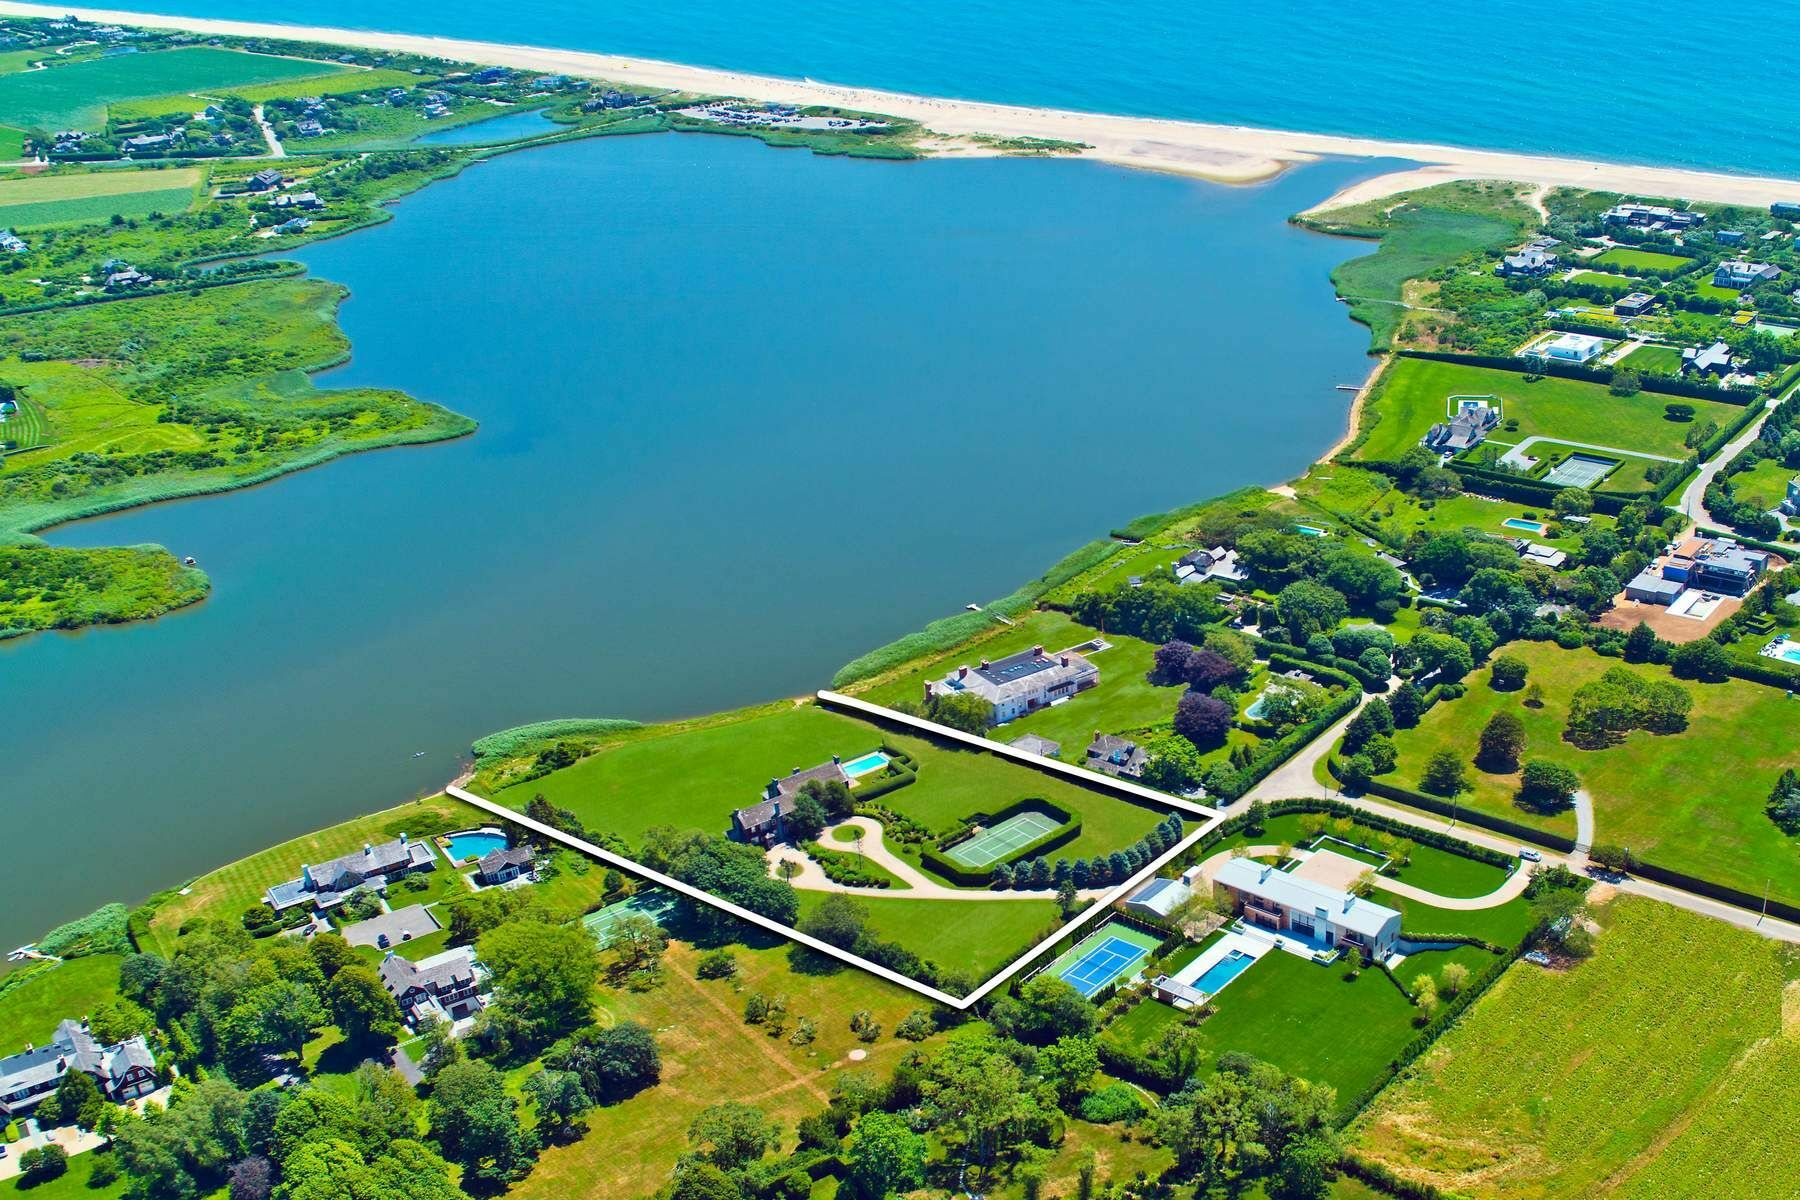 236 Quimby Lane, Bridgehampton, the No. 6 Hamptons home sale of 2019. COURTESY SOTHEBY'S INTERNATIONAL REALTY